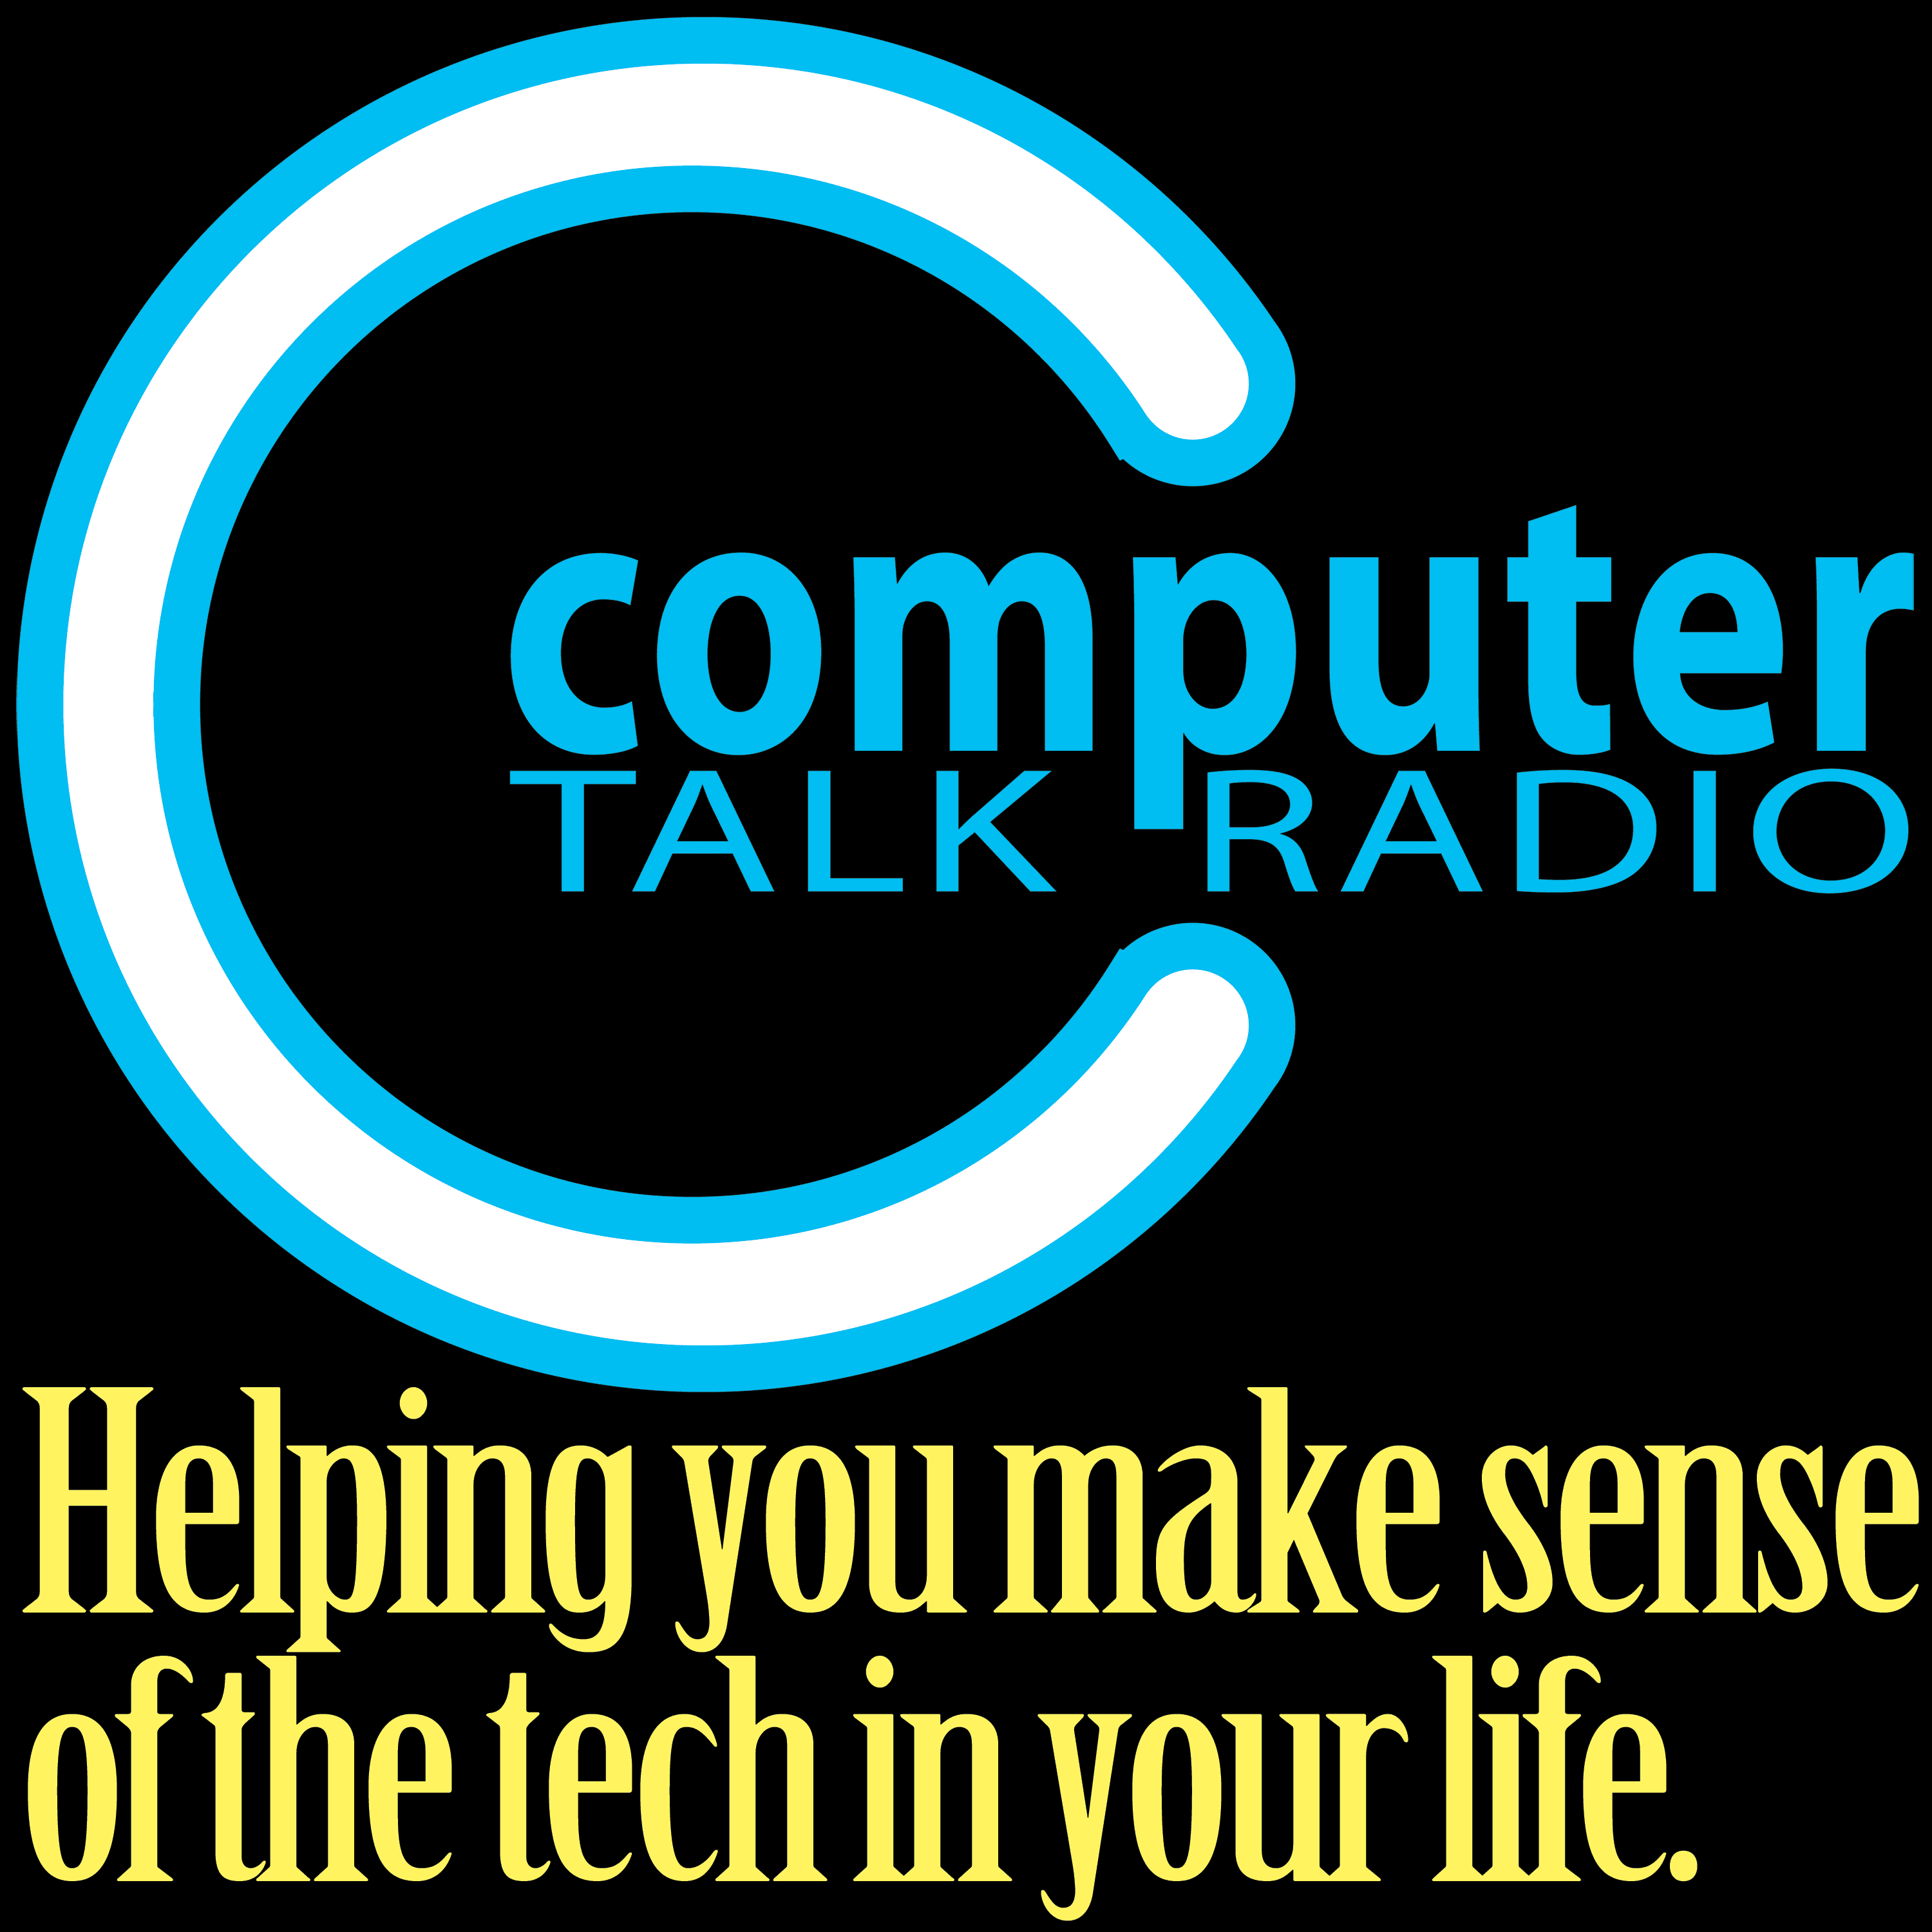 A highlight from Computer Talk Radio Broadcast 09-25-2021